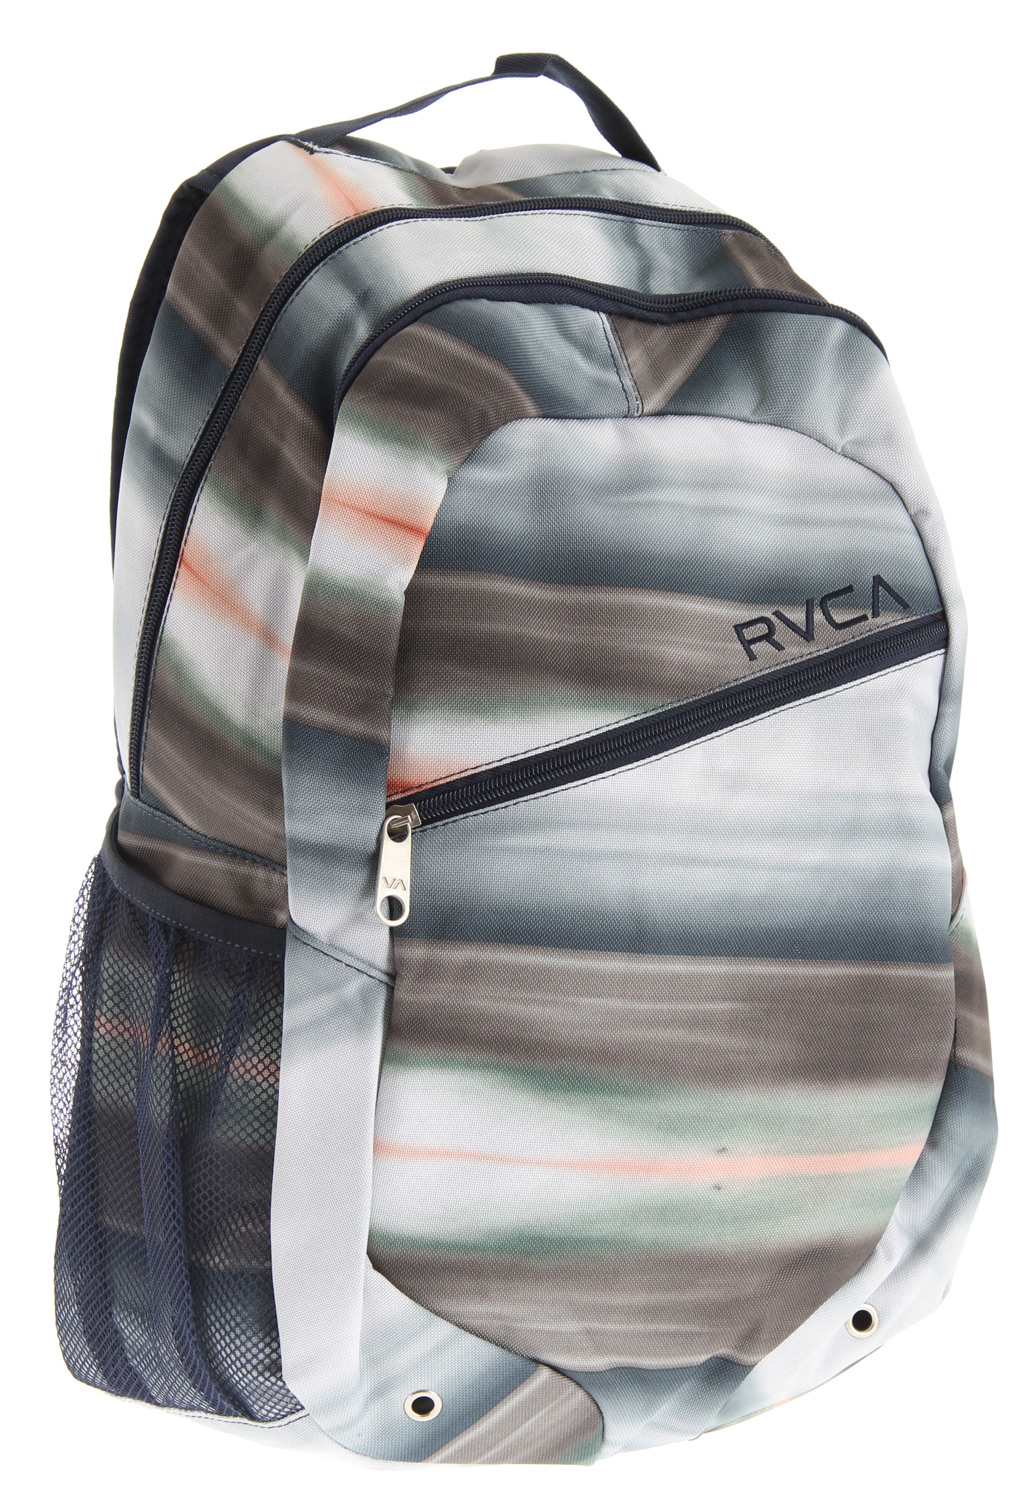 "Guns and Military Key Features of the RVCA Apocalypse Pak Backpack: Dimensions: 19"" x 13"" x 5.5"" 100% polyester printed backpack 3 zippered enclosed compartments with mesh water bottle holder at side Laptop compartment RVCA embroidery at front Embroidered VA applique at back Padded back and shoulder straps ANP woven label at shoulder strap - $31.95"